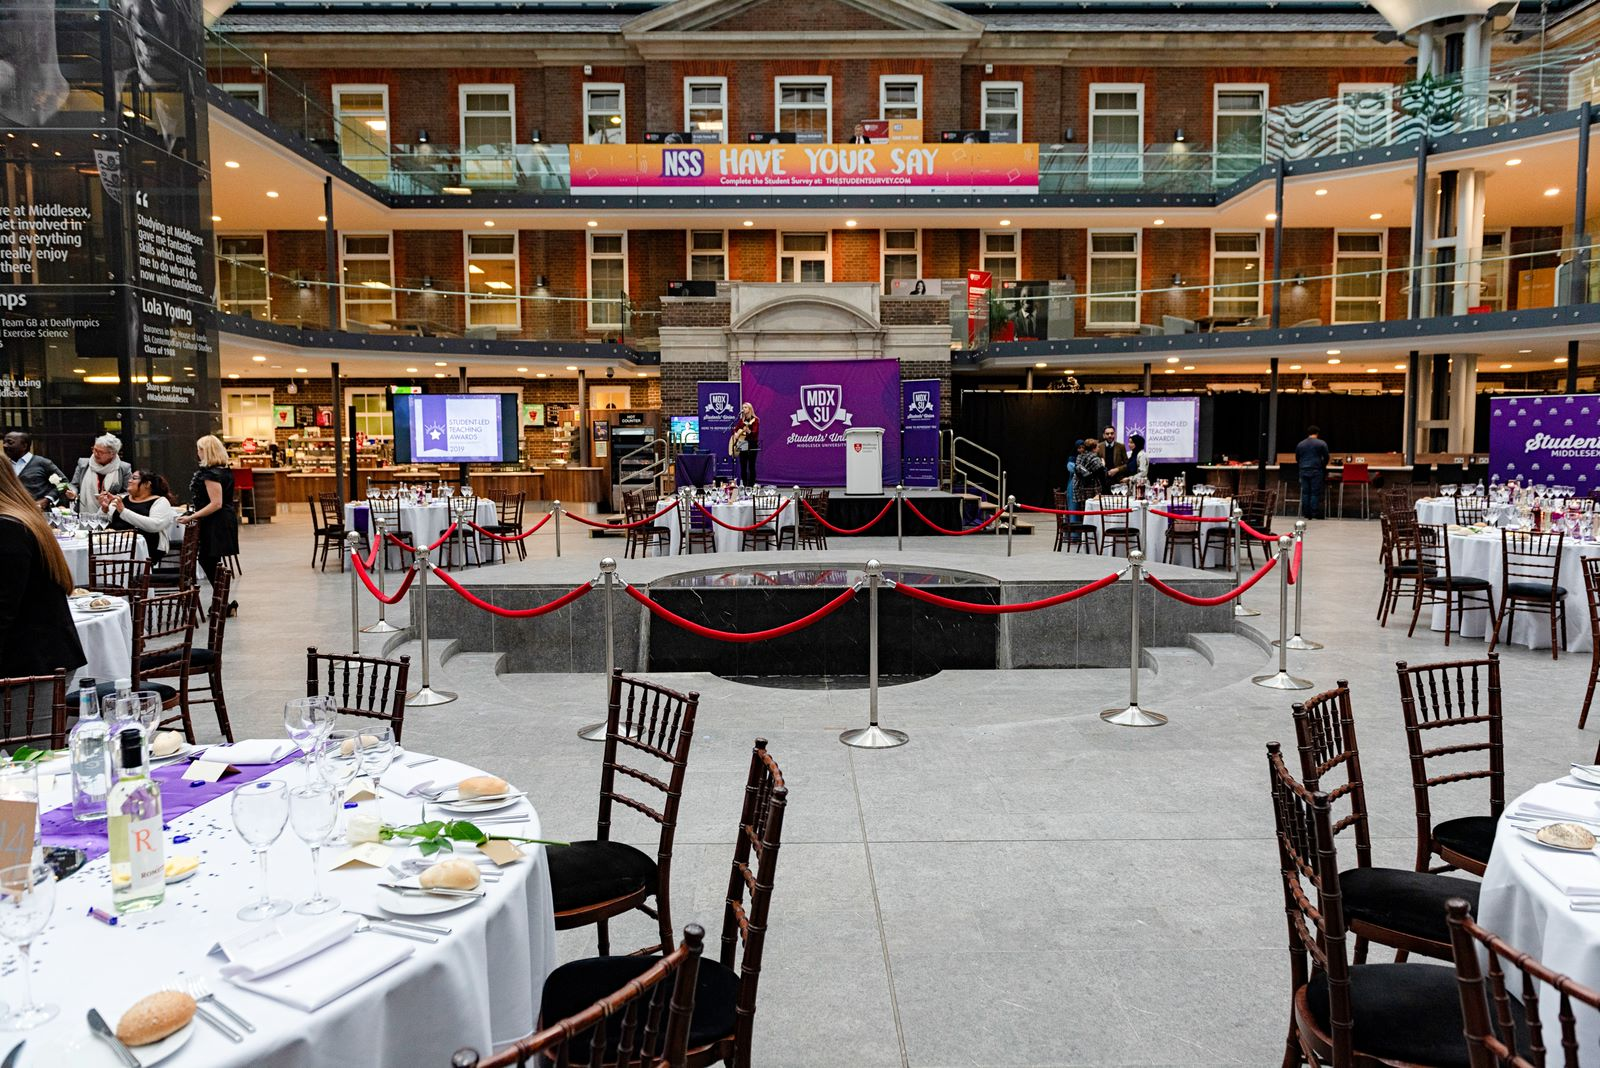 The Quad set up for an awards ceremony